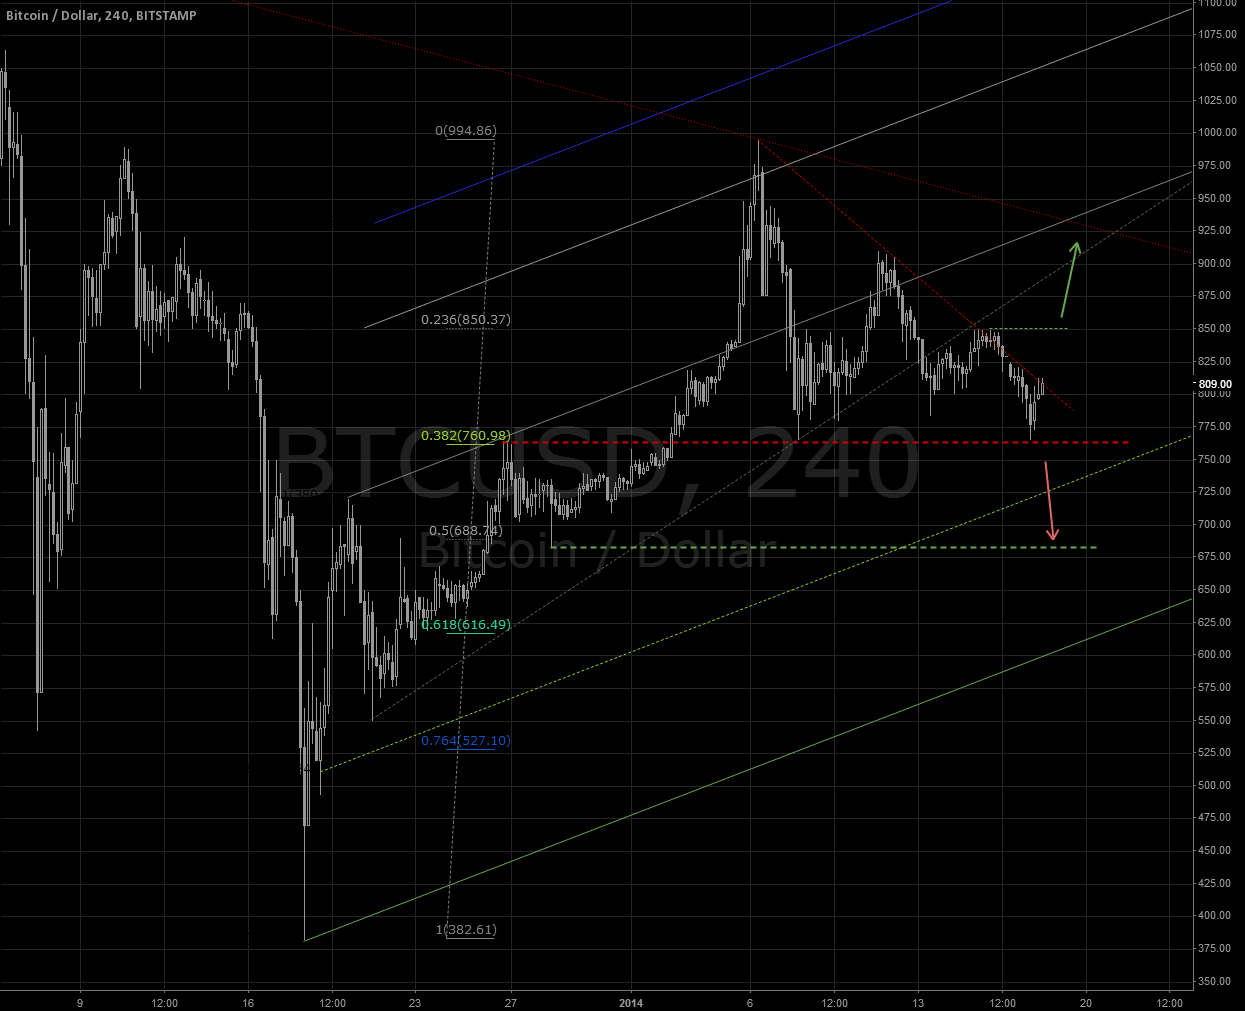 BTC BITSTAMP (PART 4) Update